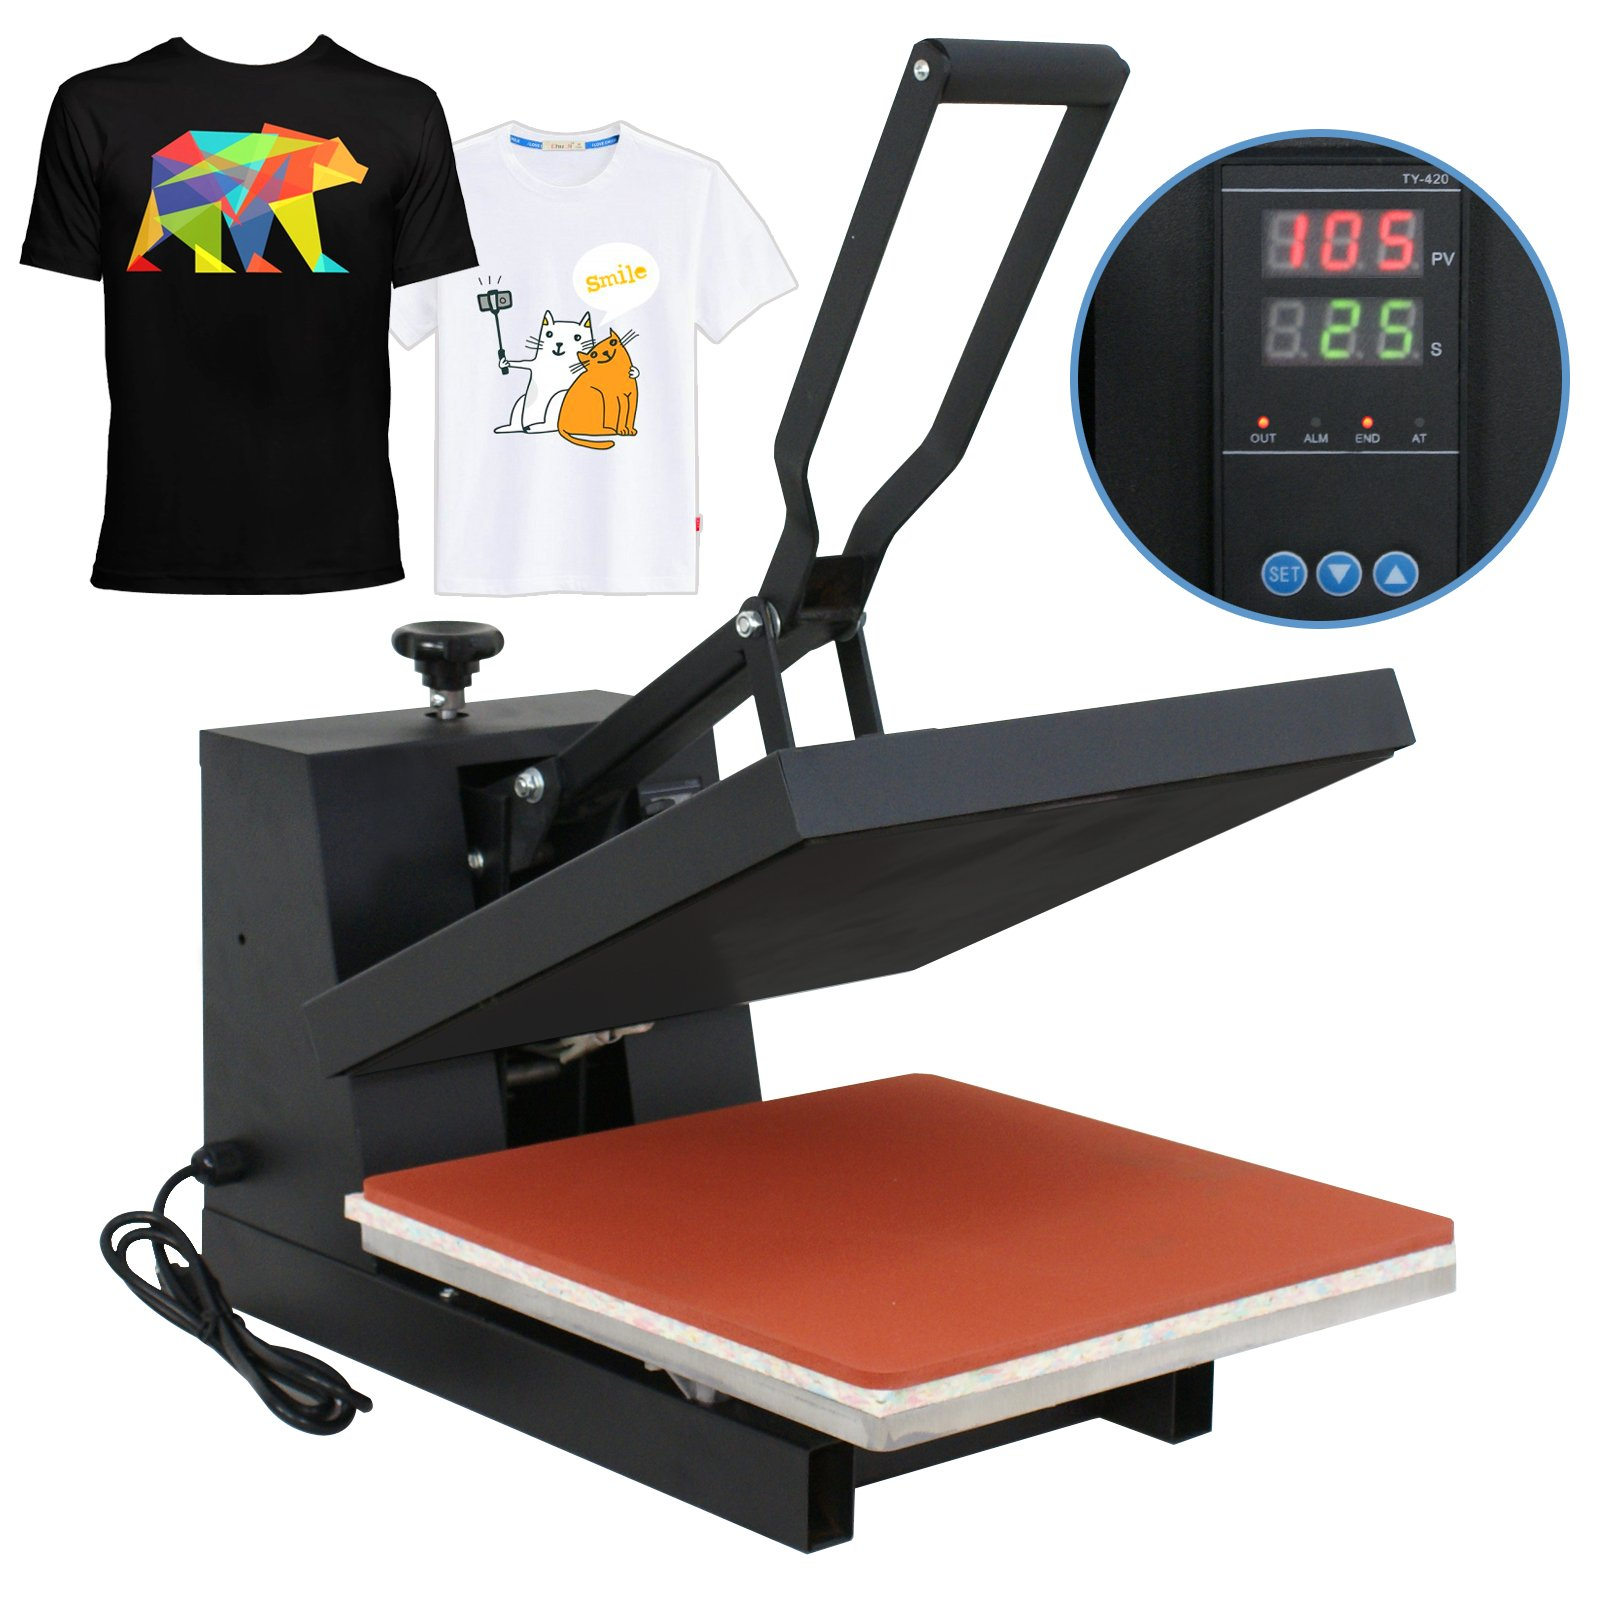 Super Deal 15'' X 15'' Digital Heat Press Clamshell Transfer Machine for T-Shirt by SUPER DEAL